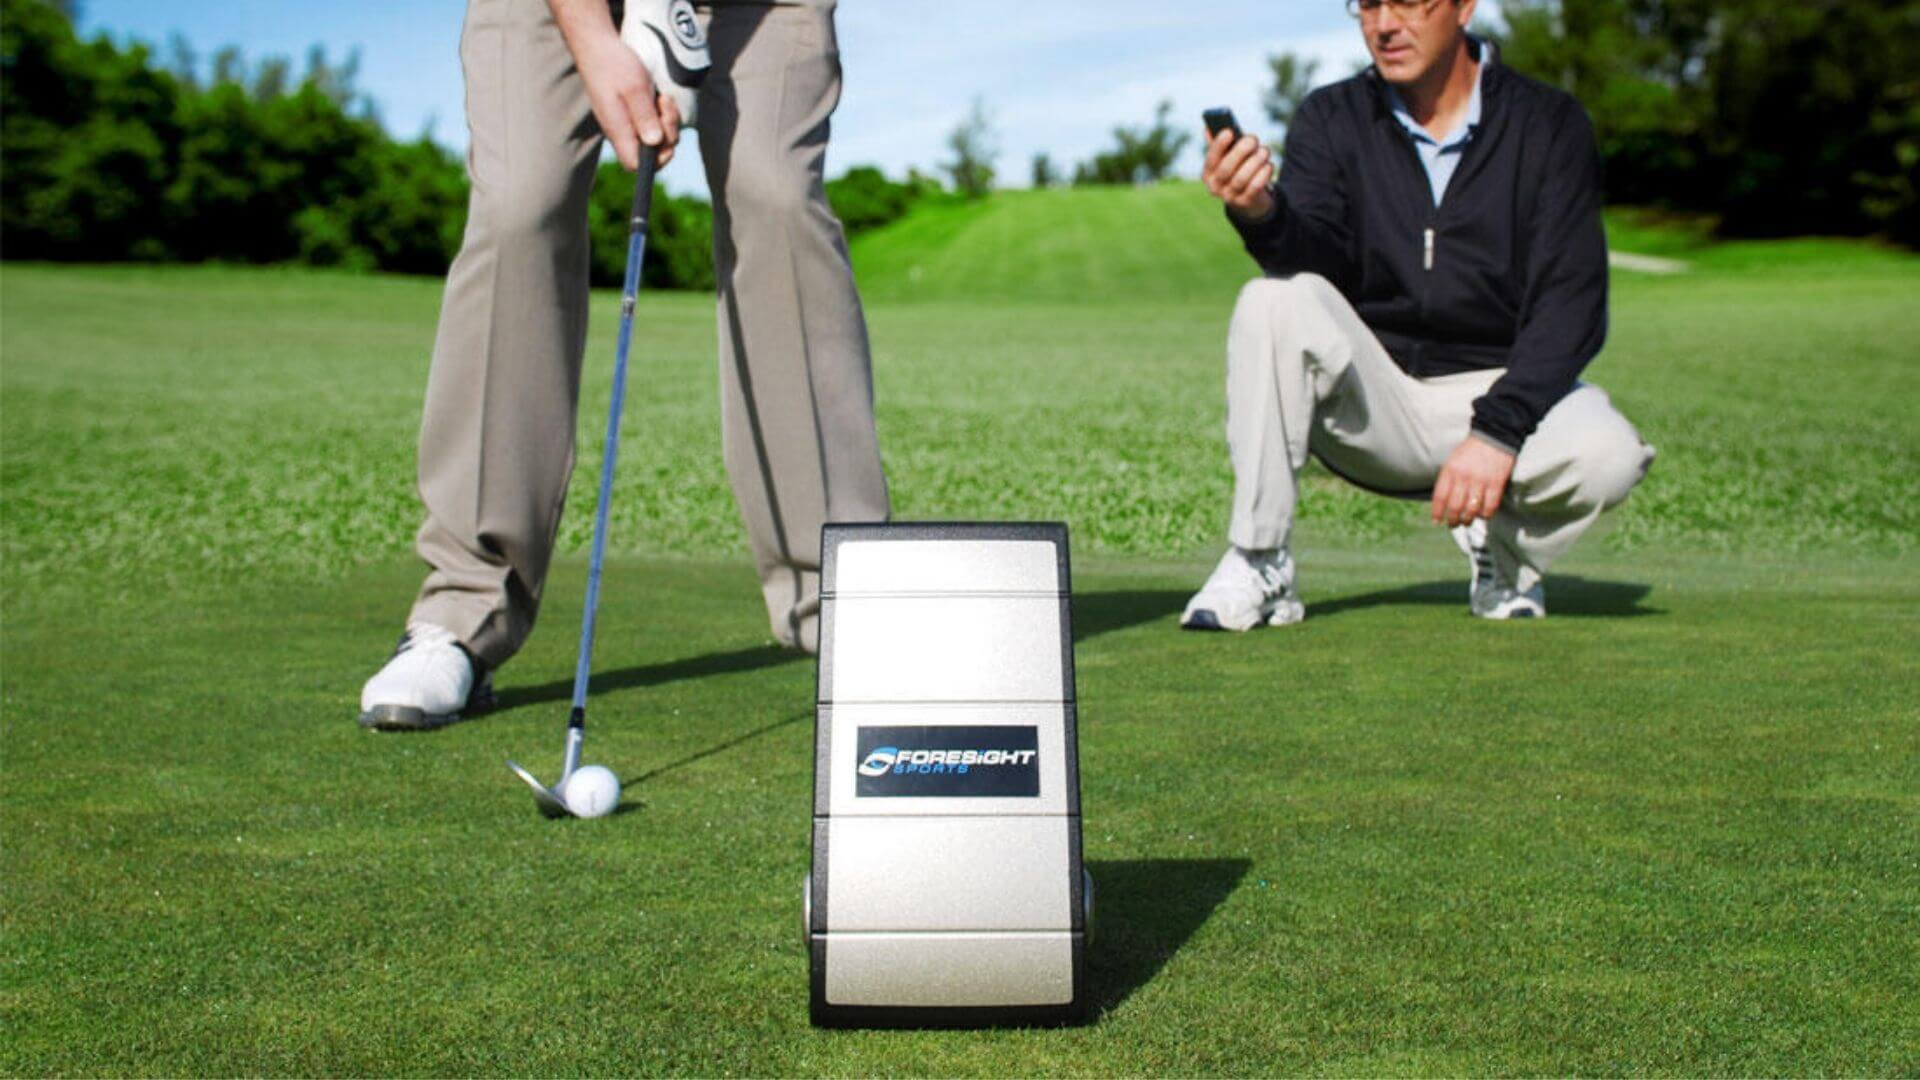 gc2 launch monitor being used on the golf driving range